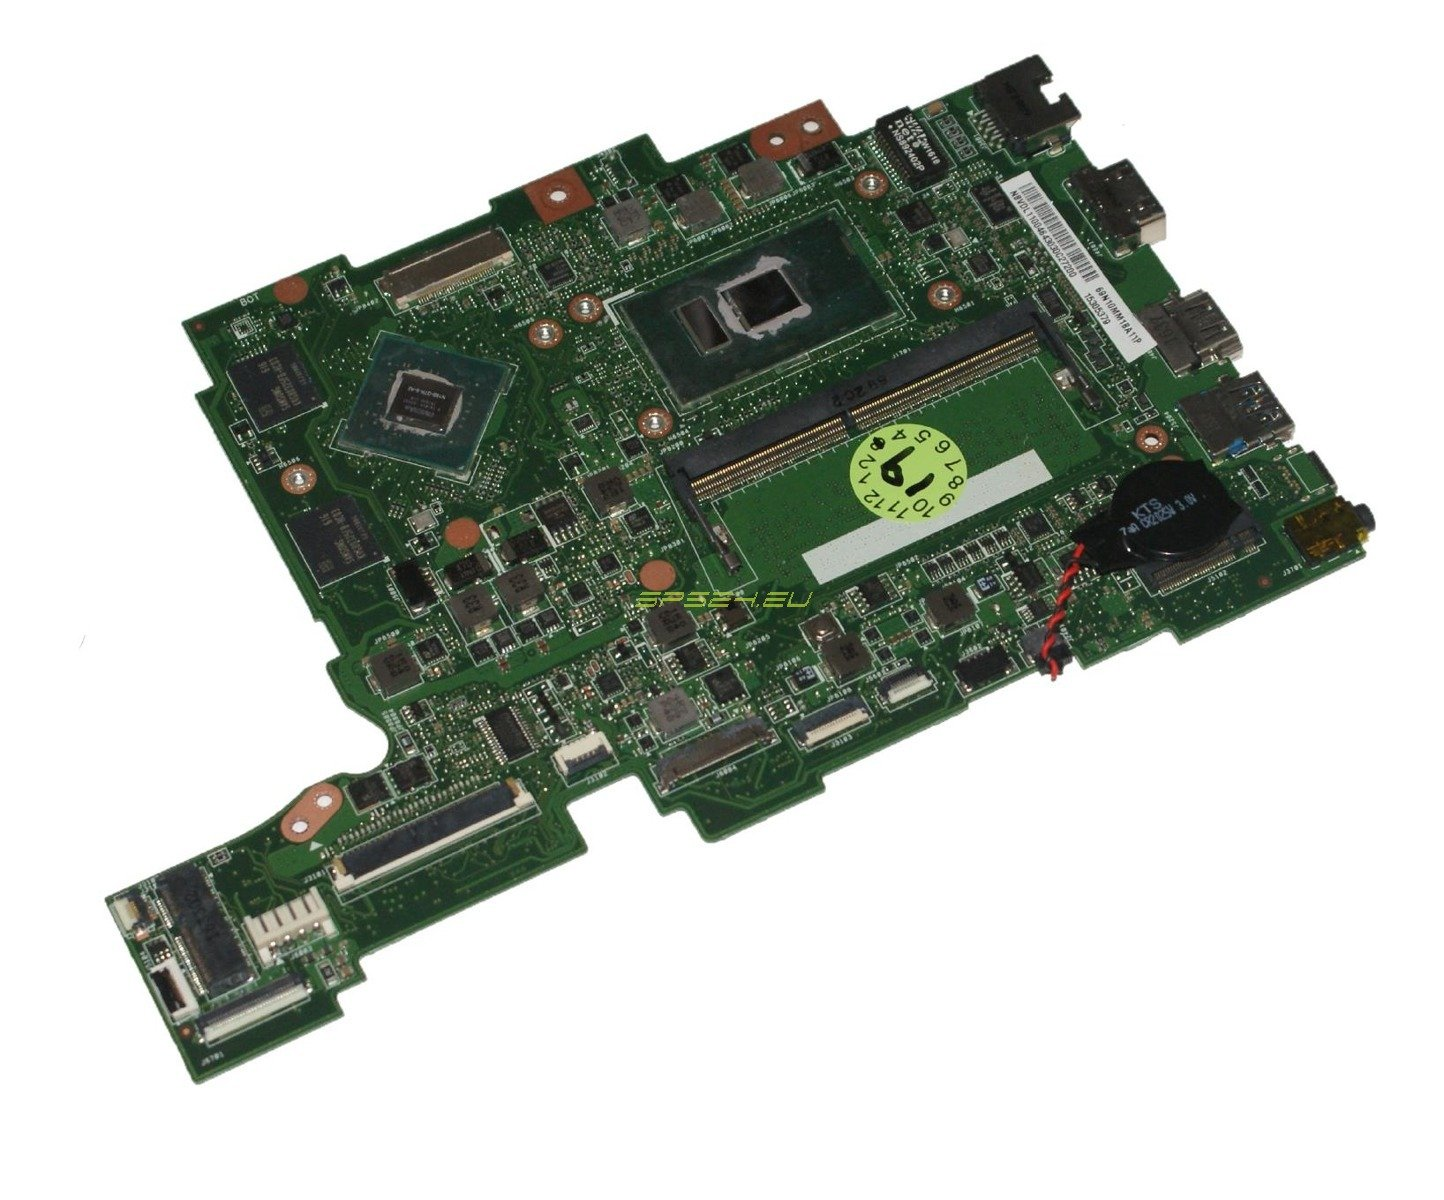 Motherboard Pa4db Dsc Mb Acer Travelmate P449 Mg P459 Mg I7 6500u Gtx 940m 2gb Acer Laptop Travelmate P459 Mg Acer Laptop Travelmate P449 M